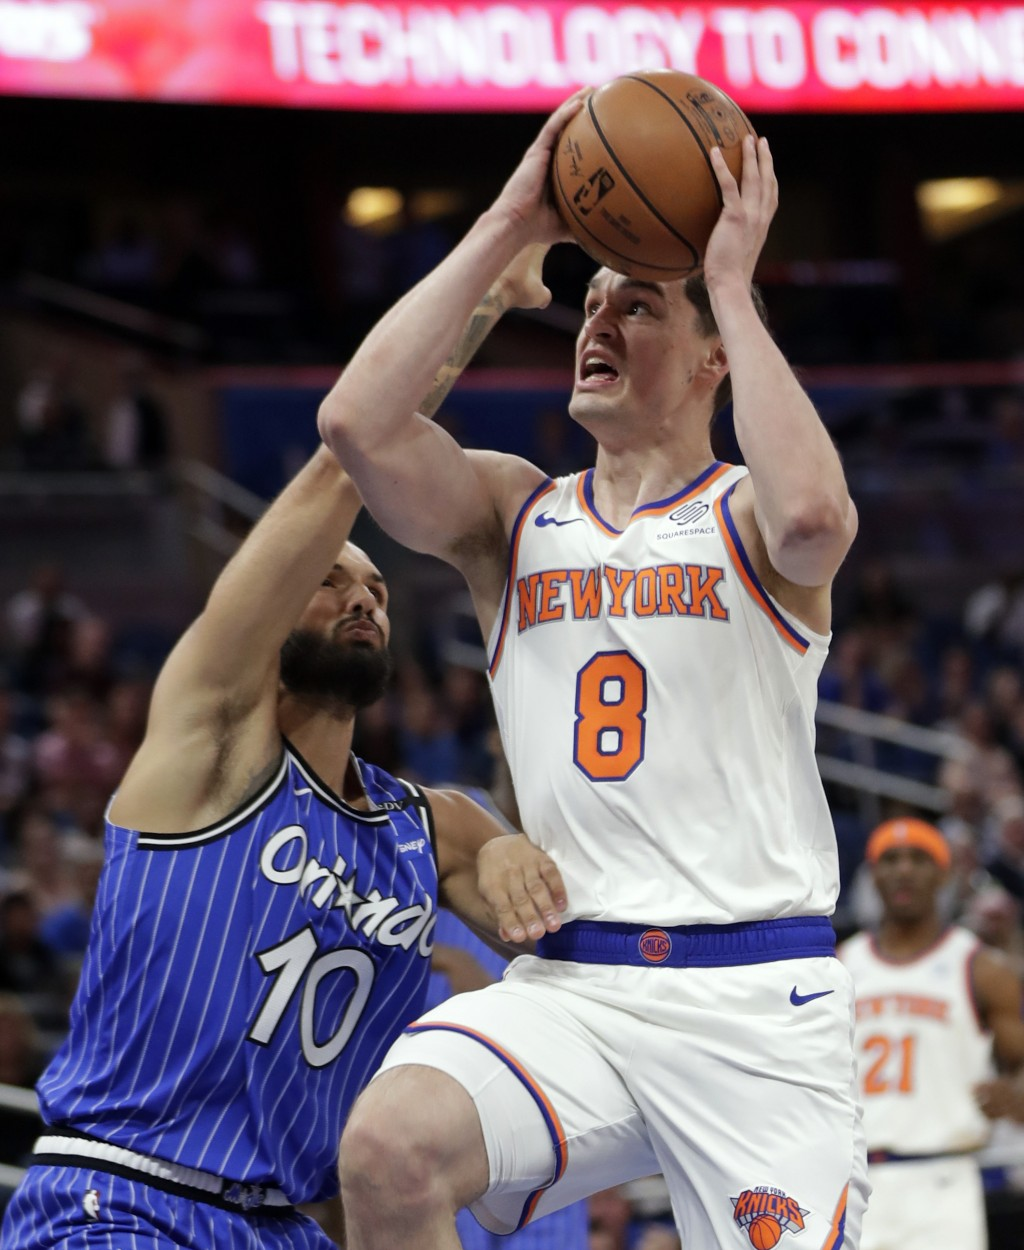 New York Knicks' Mario Hezonja (8) goes up for a shot against Orlando Magic's Evan Fournier (10) during the first half of an NBA basketball game Wedne...